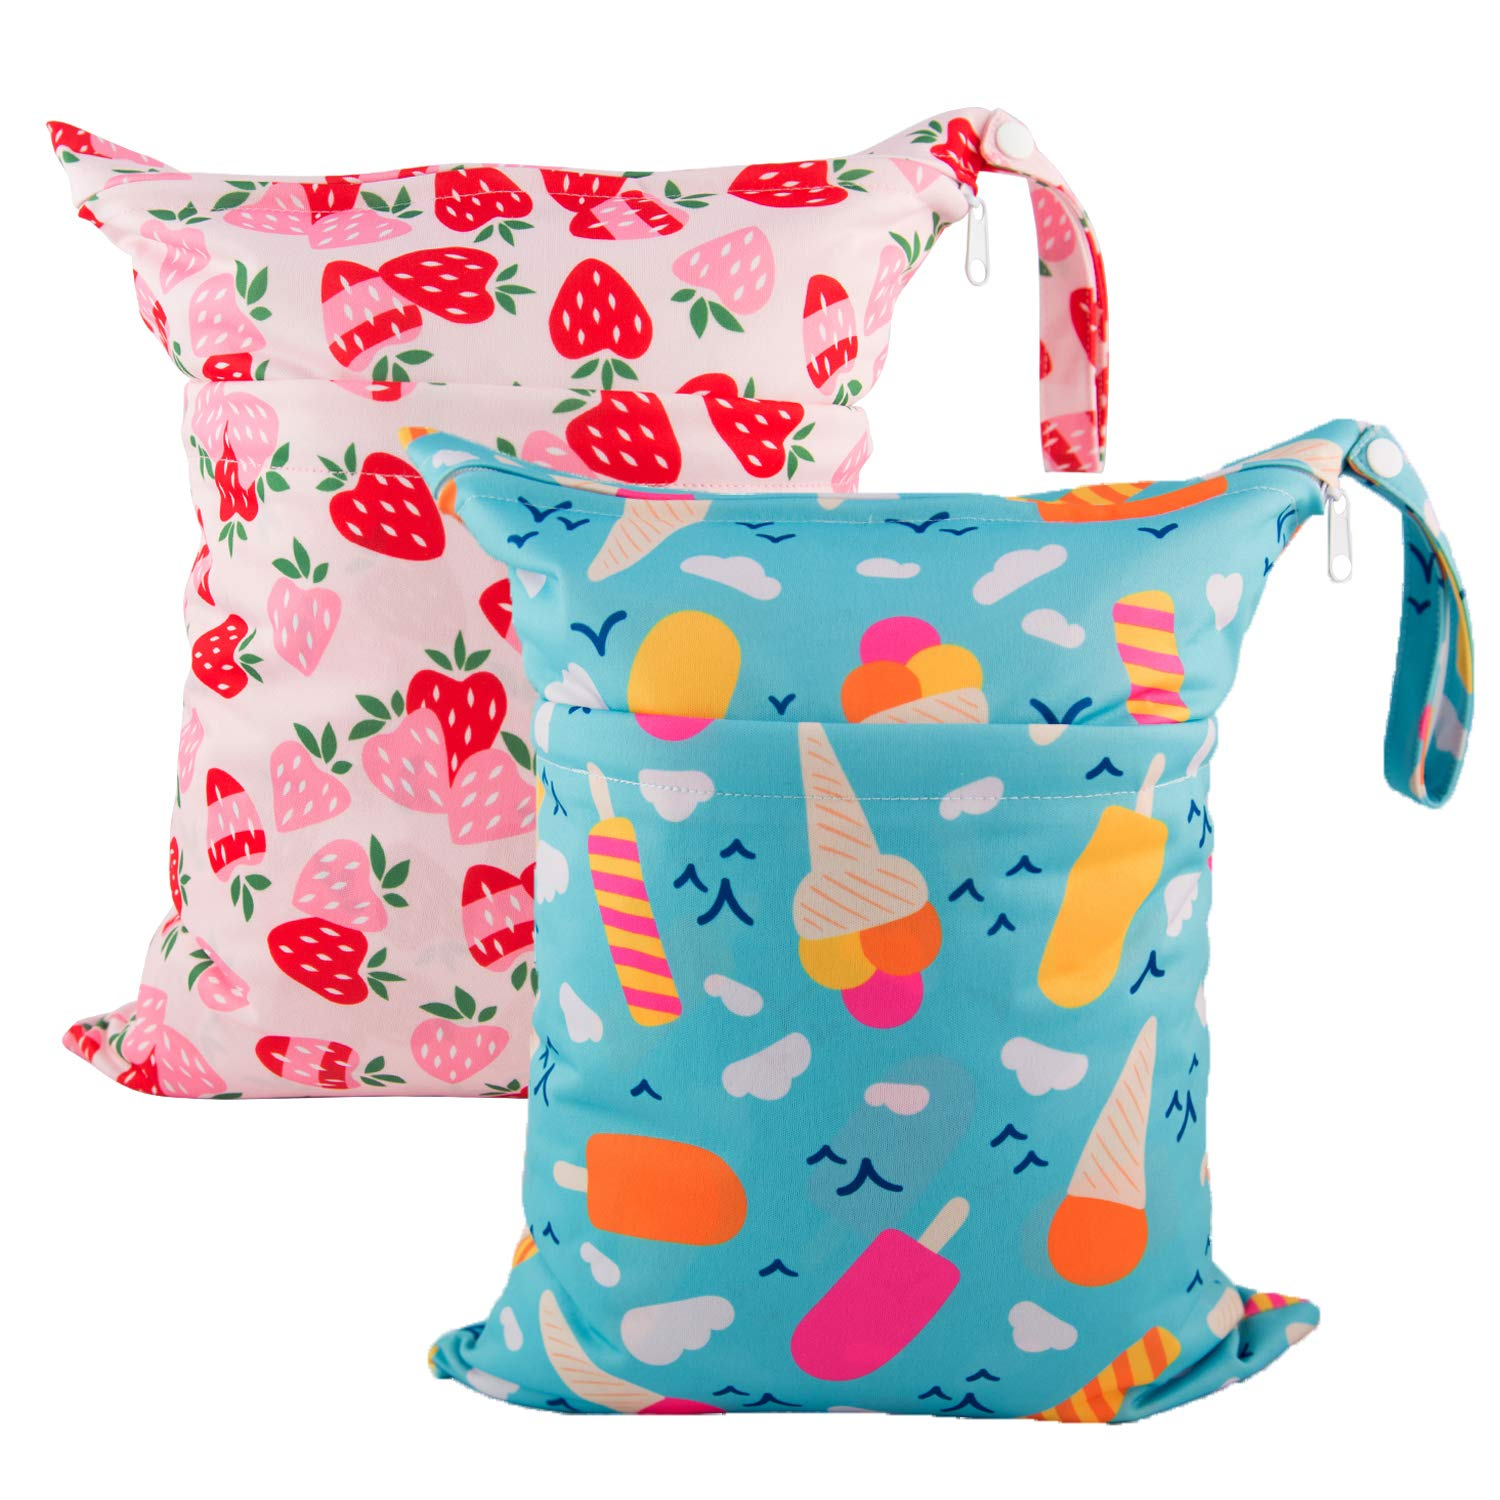 H02 GothYor Youngle Wet Dry Bag,Reusable Baby Diaper Organizer,With Two Zippered Pockets Travel Beach Pool Daycare Soiled Baby Items Yoga Gym Bag For Swimsuits Or Wet Clothes 3 Pack